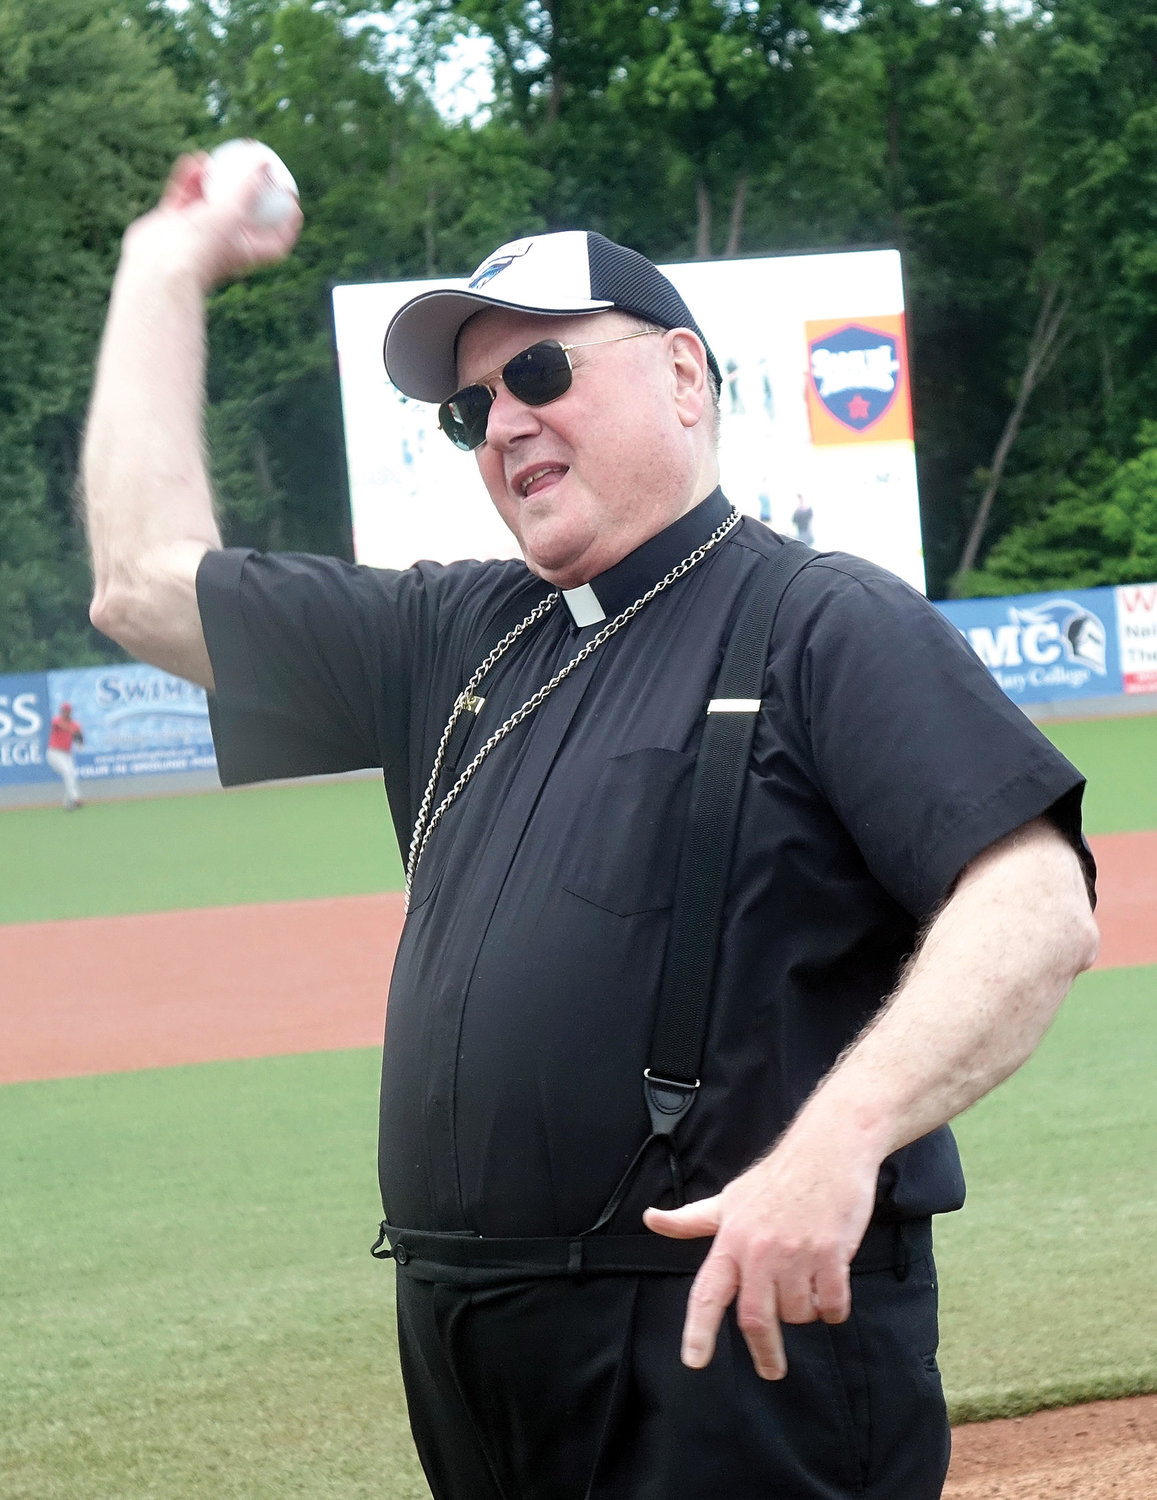 Cardinal Dolan throws out a ceremonial first pitch before the New York-Penn League game between the Hudson Valley Renegades and Lowell Spinners.